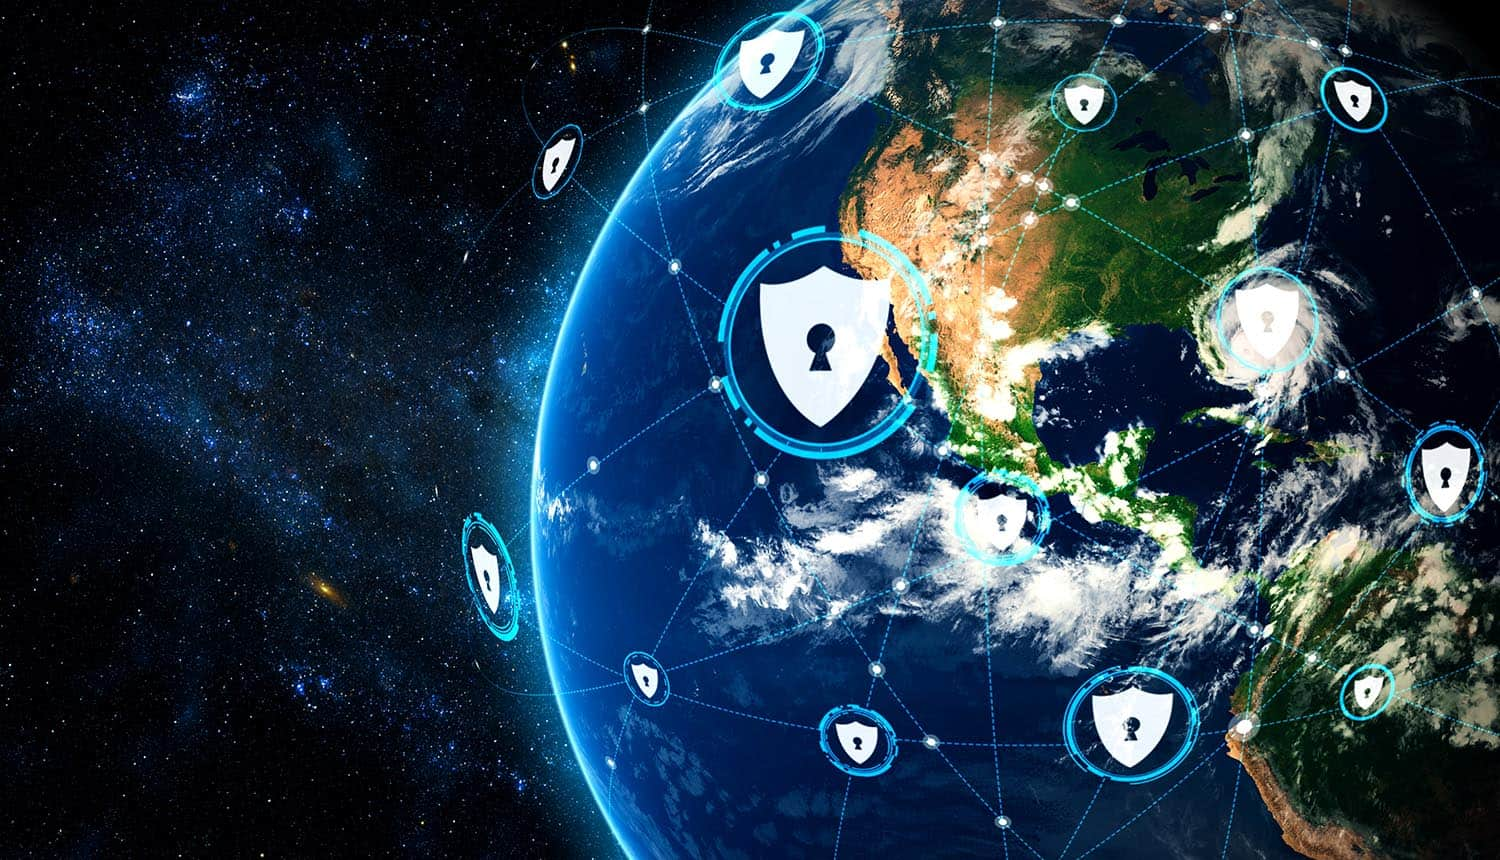 Digital shields around the globe showing cloud security